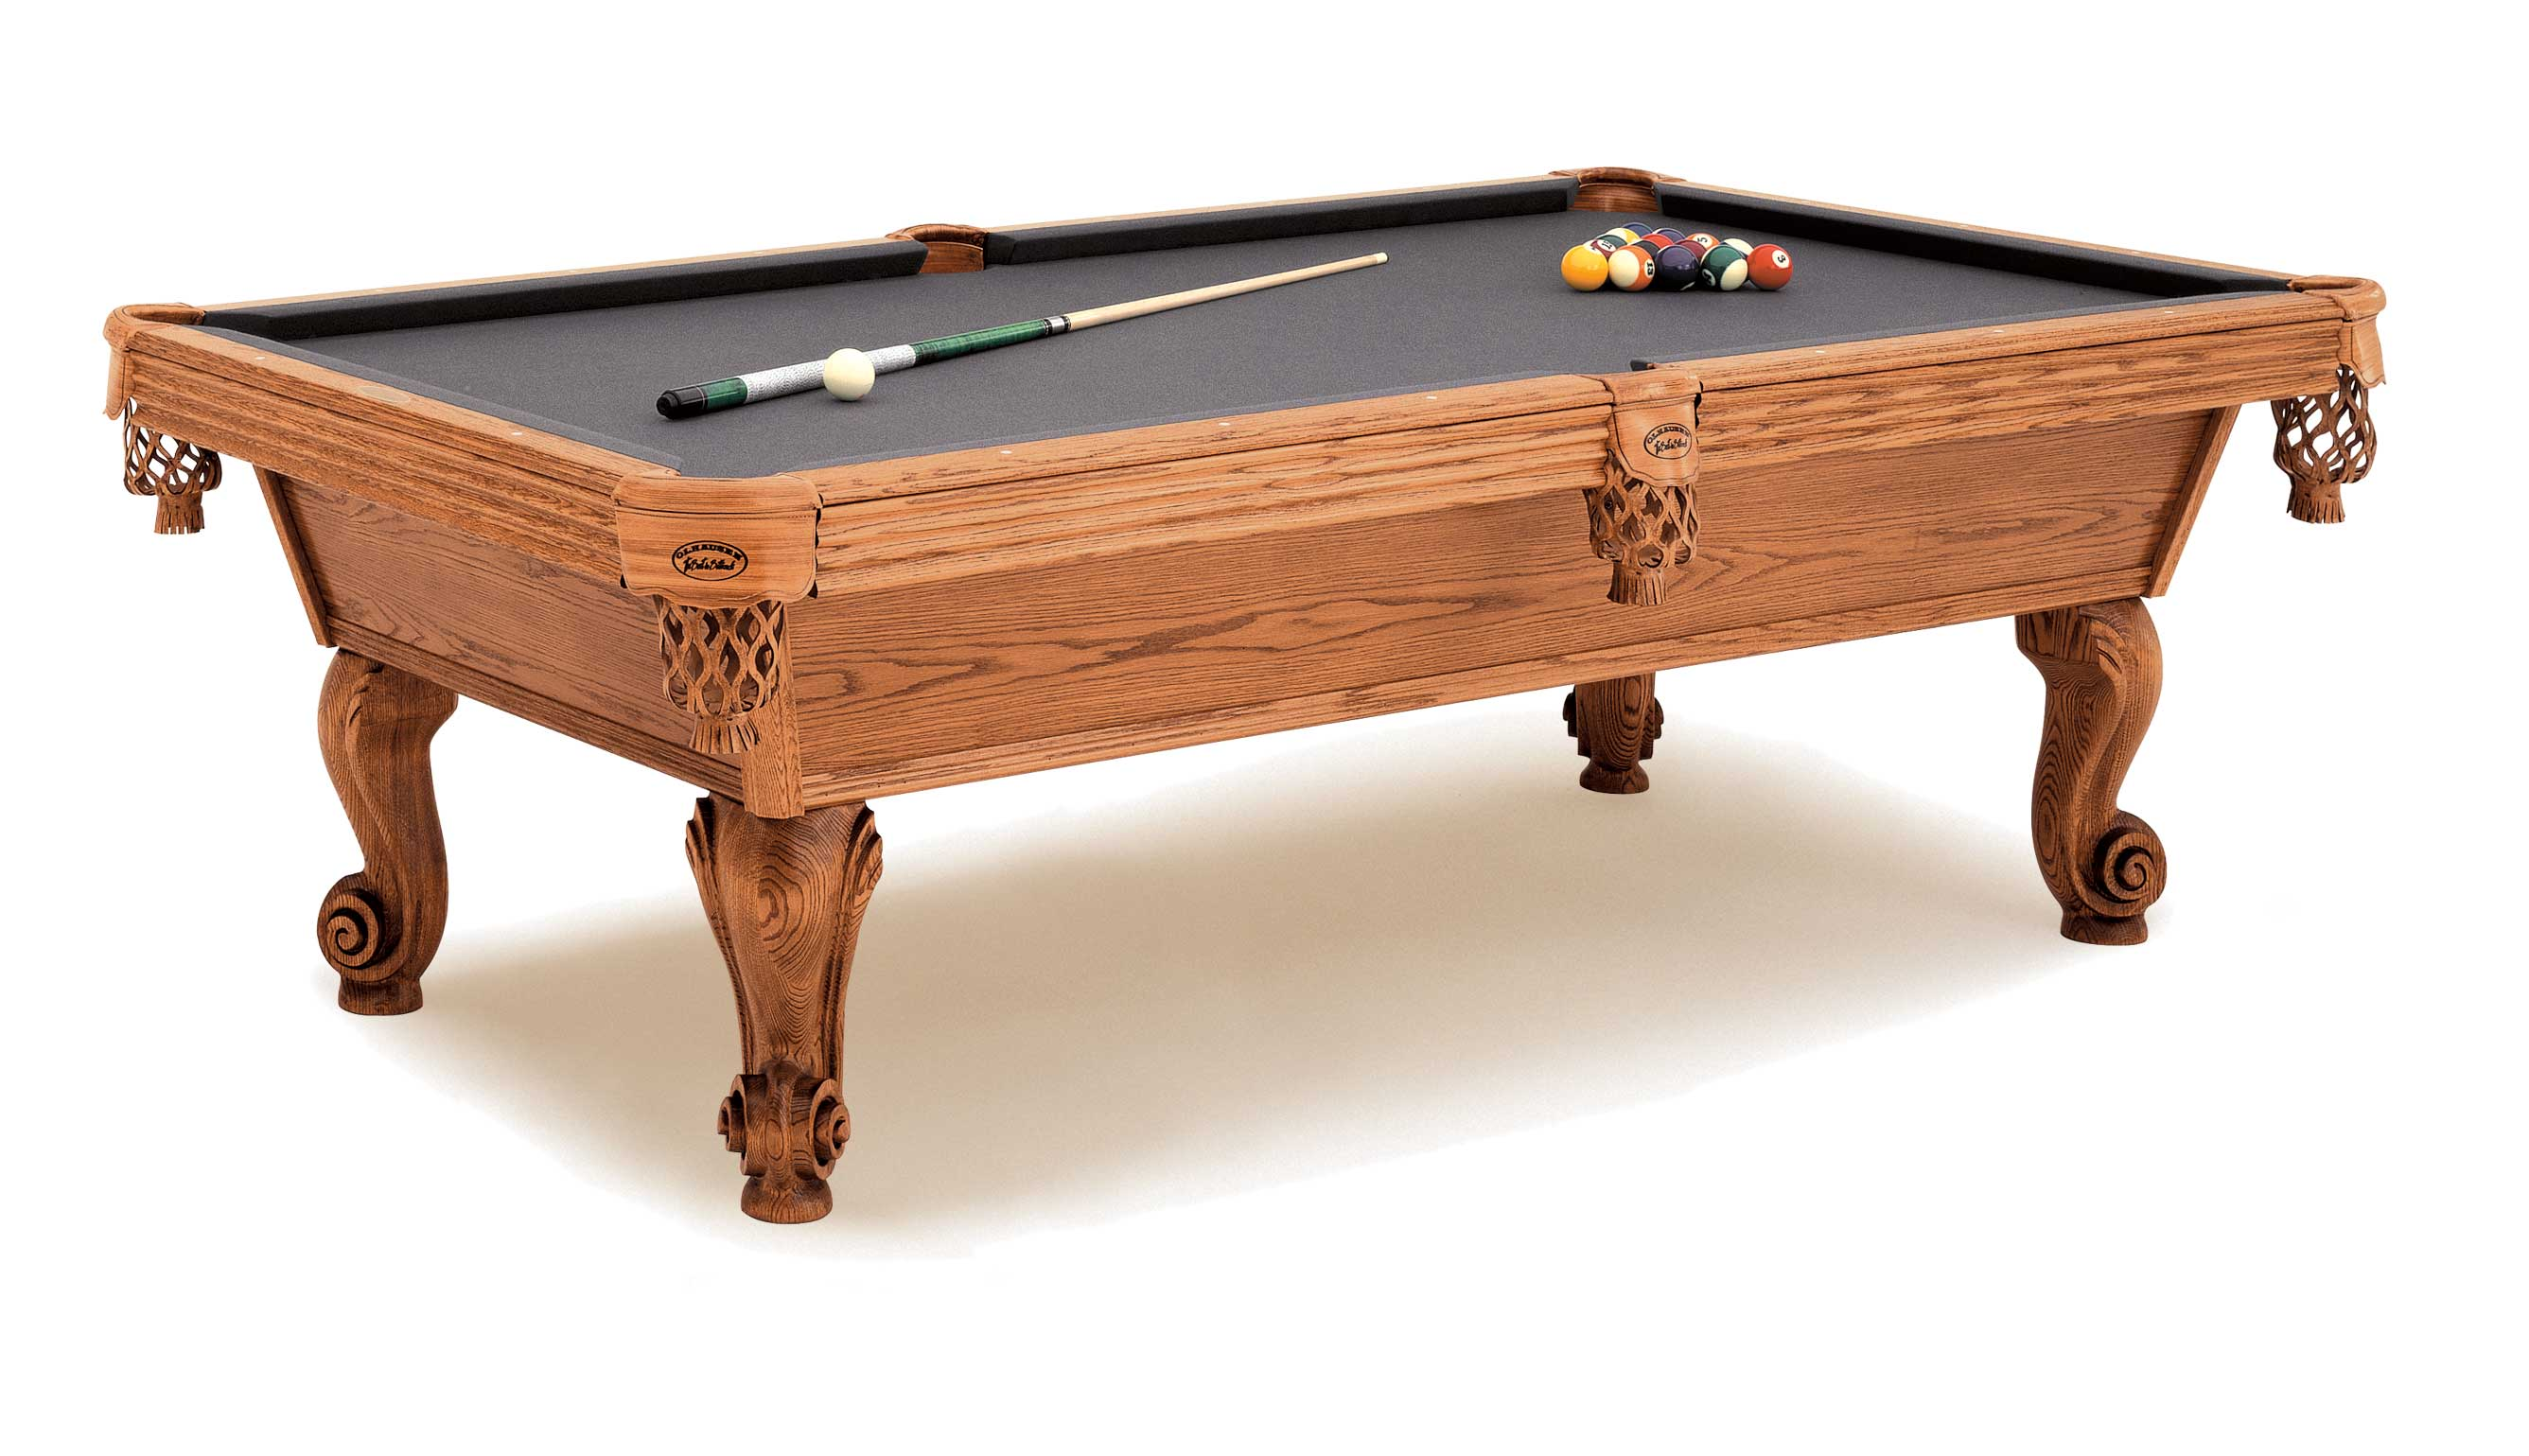 Olhausen pool tables for sale new jersey billiards pool - Pool table images ...